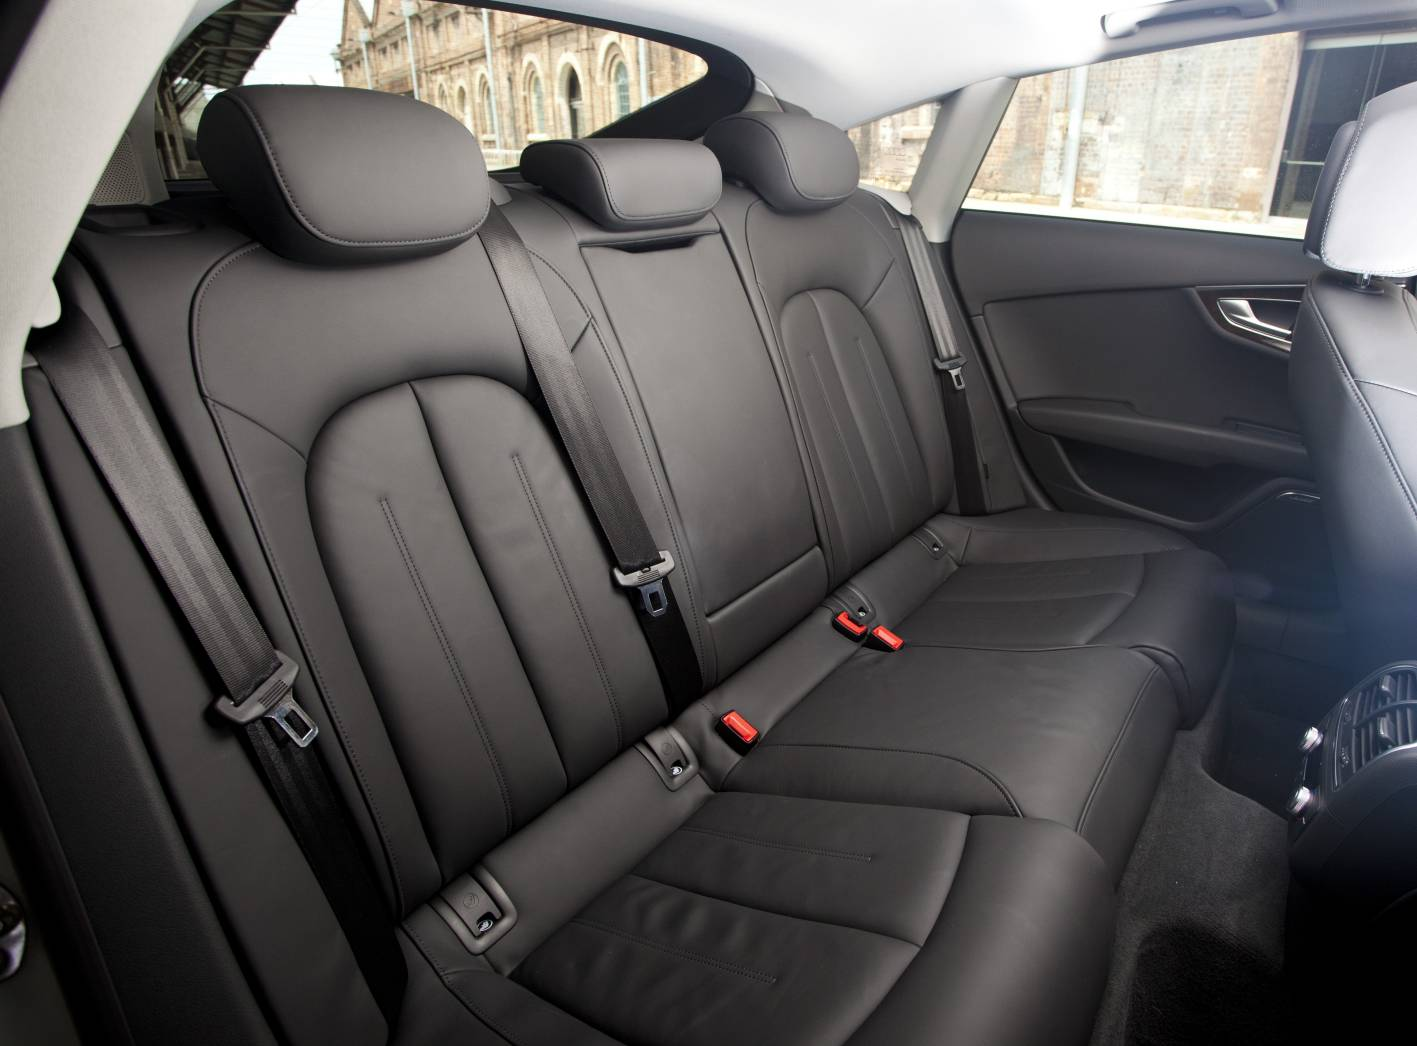 the gallery for audi a7 2013 back seat. Black Bedroom Furniture Sets. Home Design Ideas